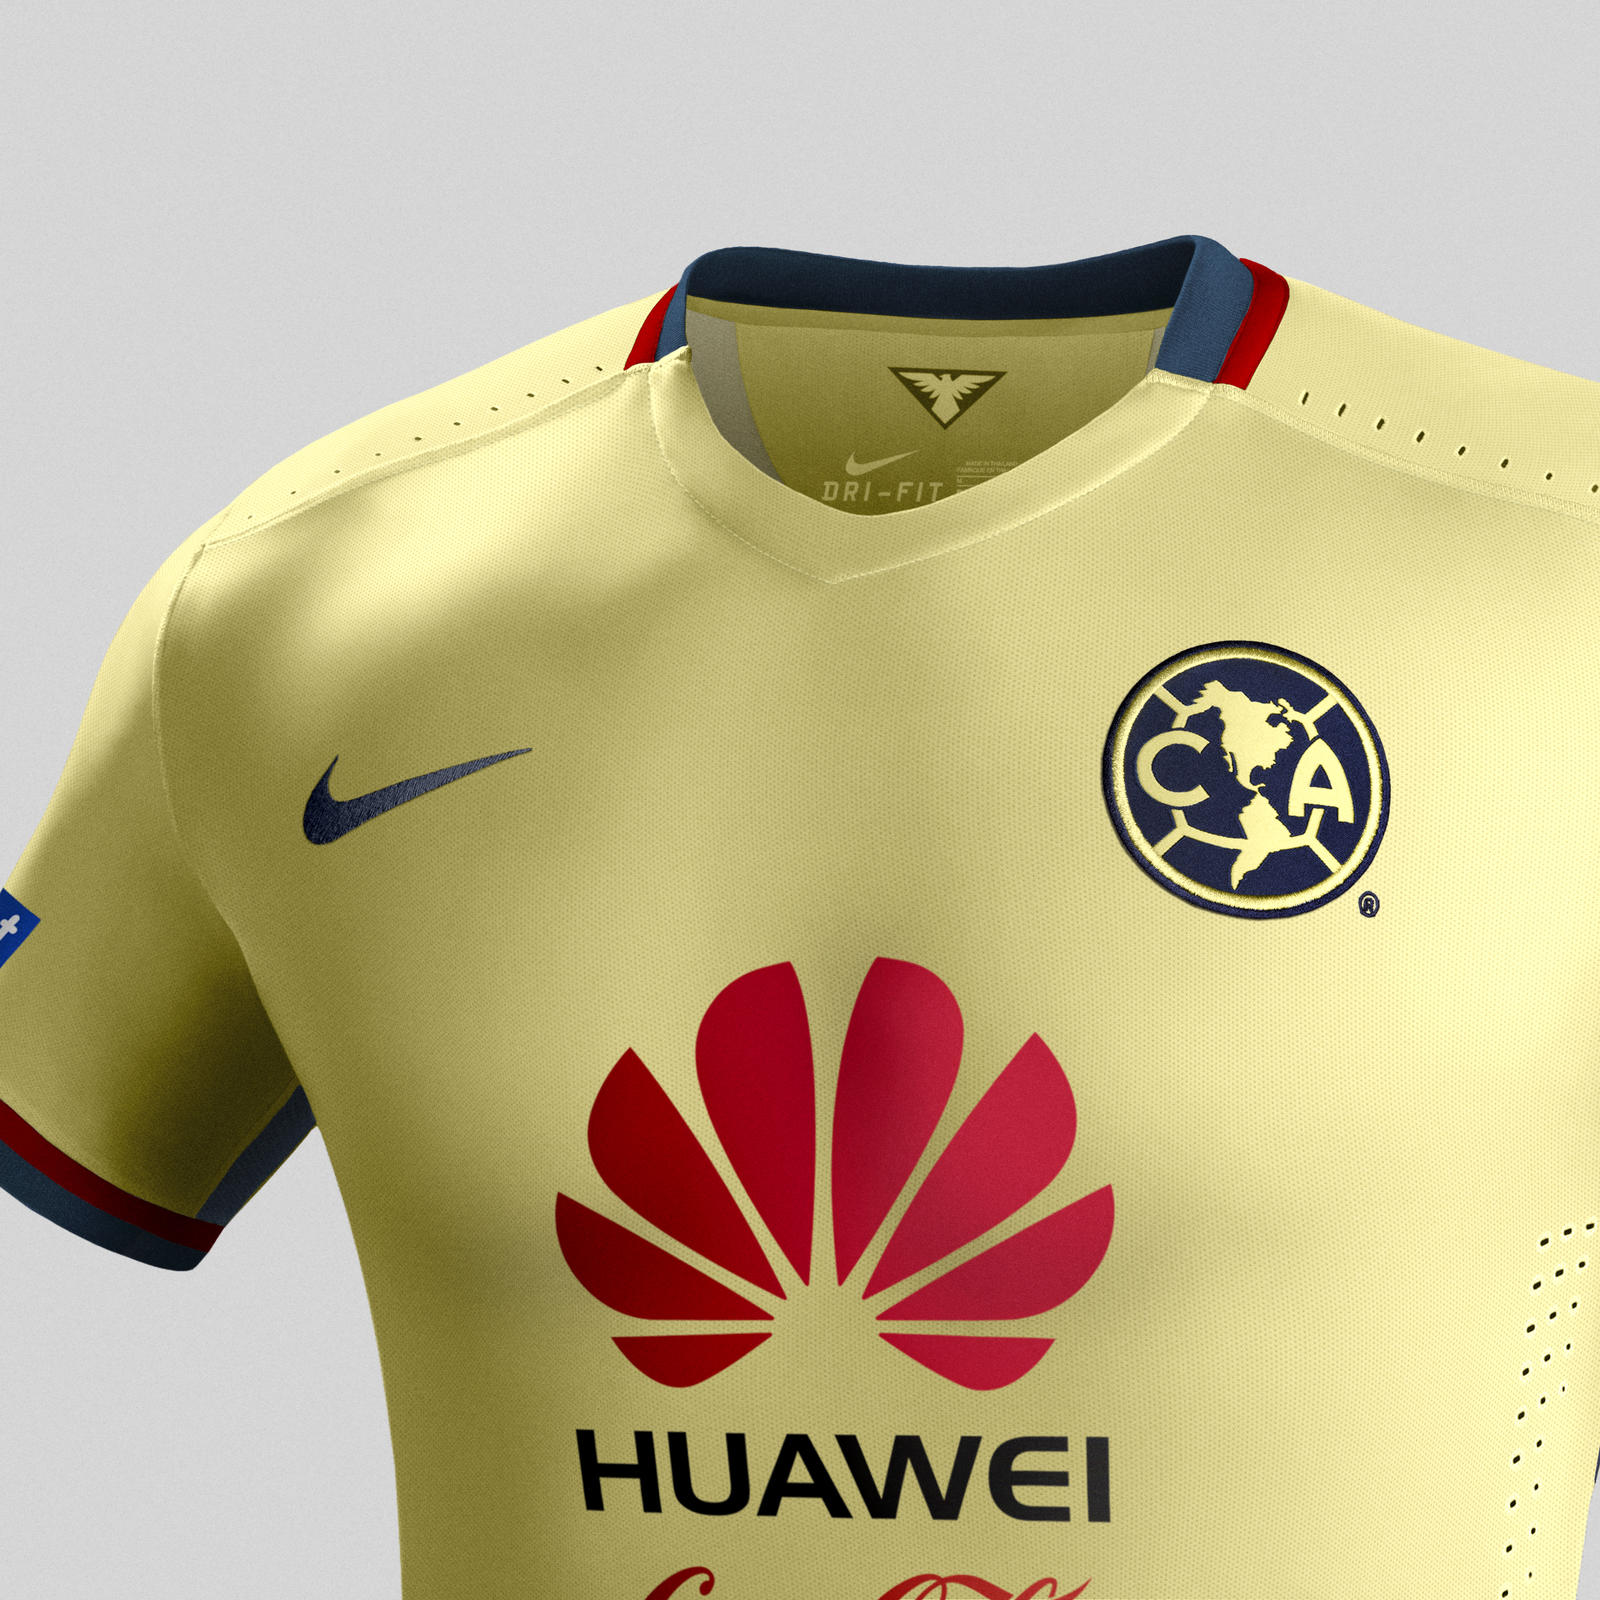 91dcc2e16 2015 2016 club america soccer jersey uniform yellow short sleeves